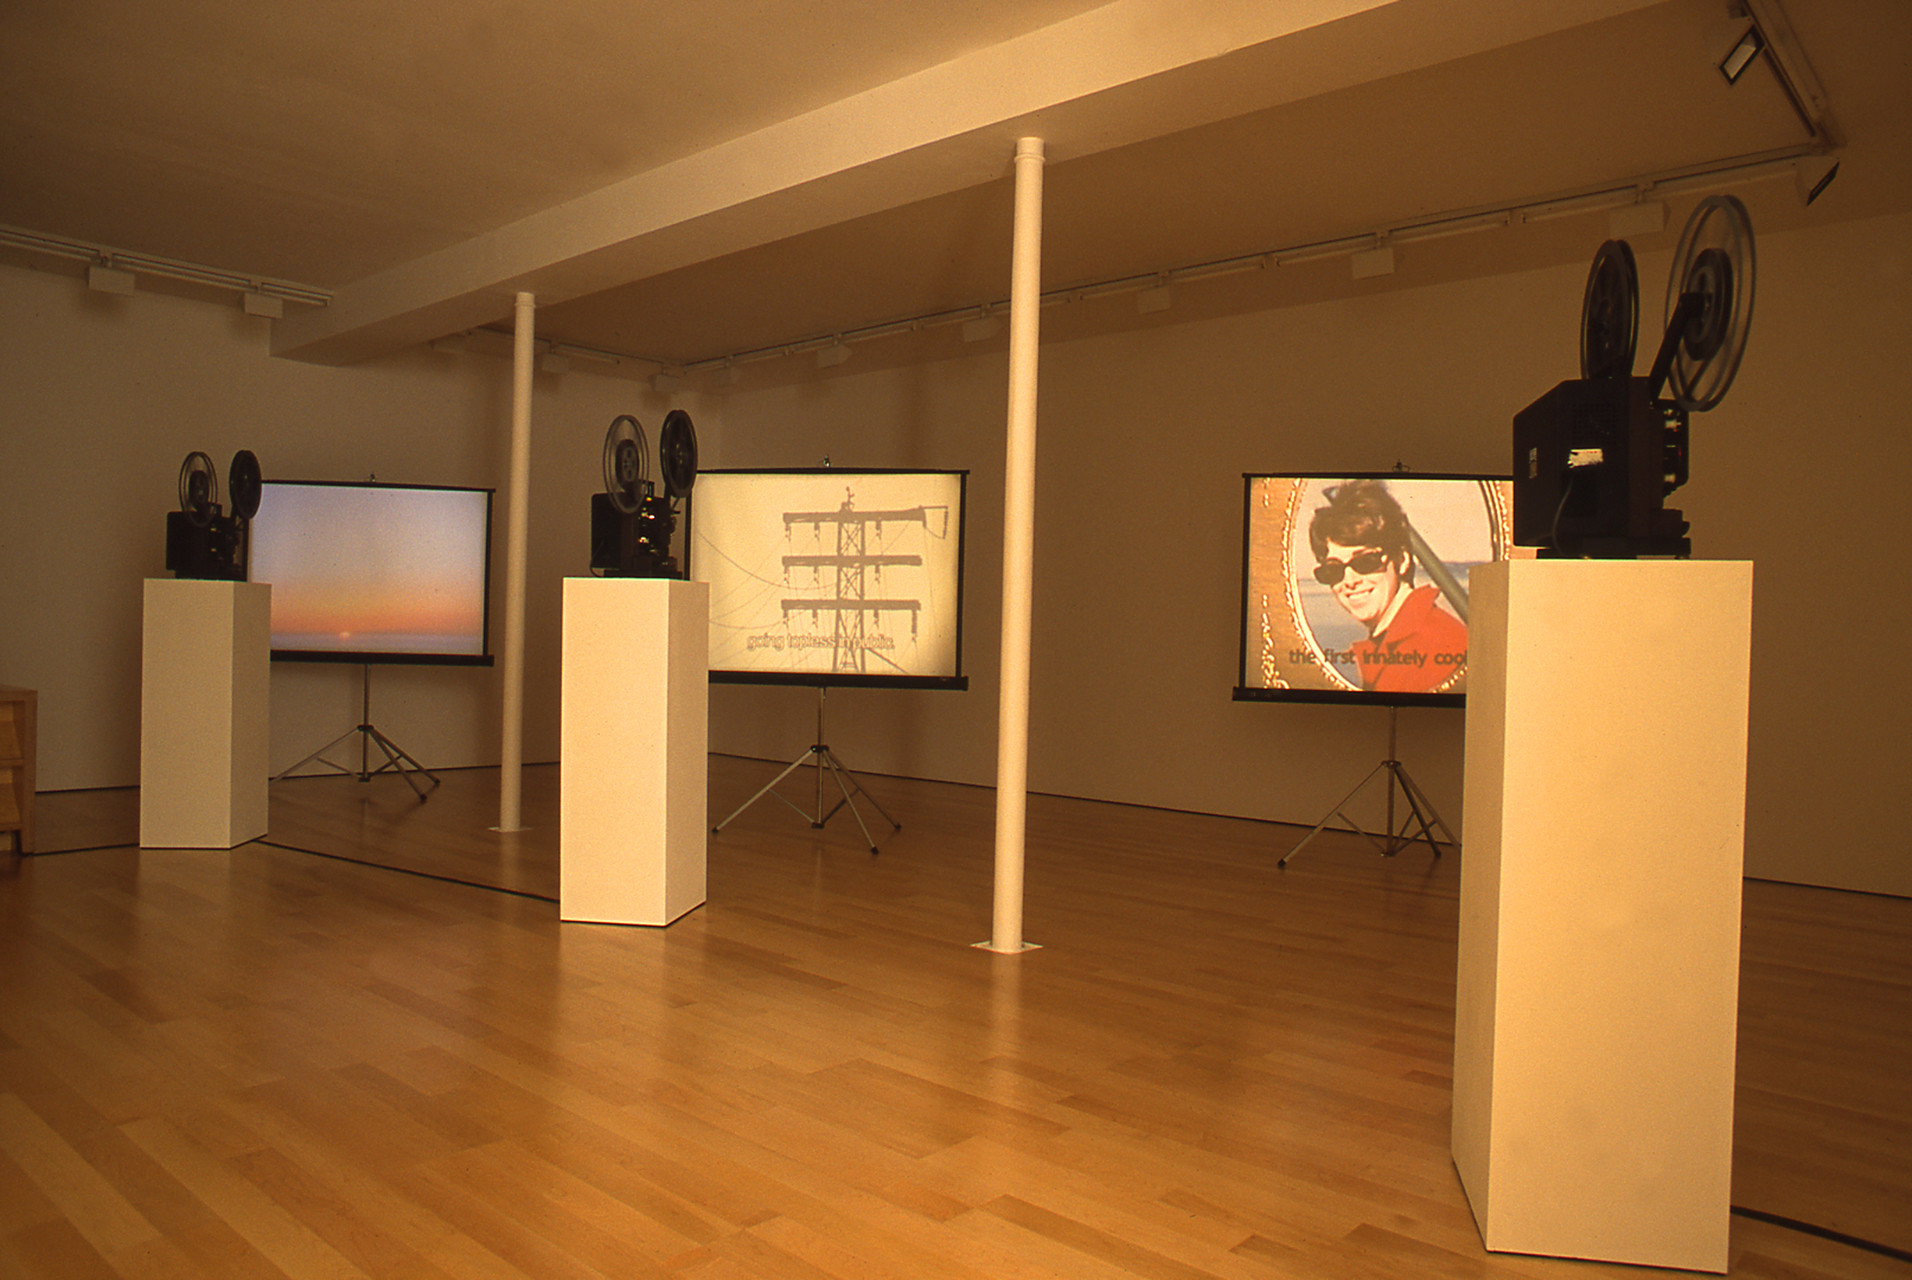 <p>Installation View, 2003</p>